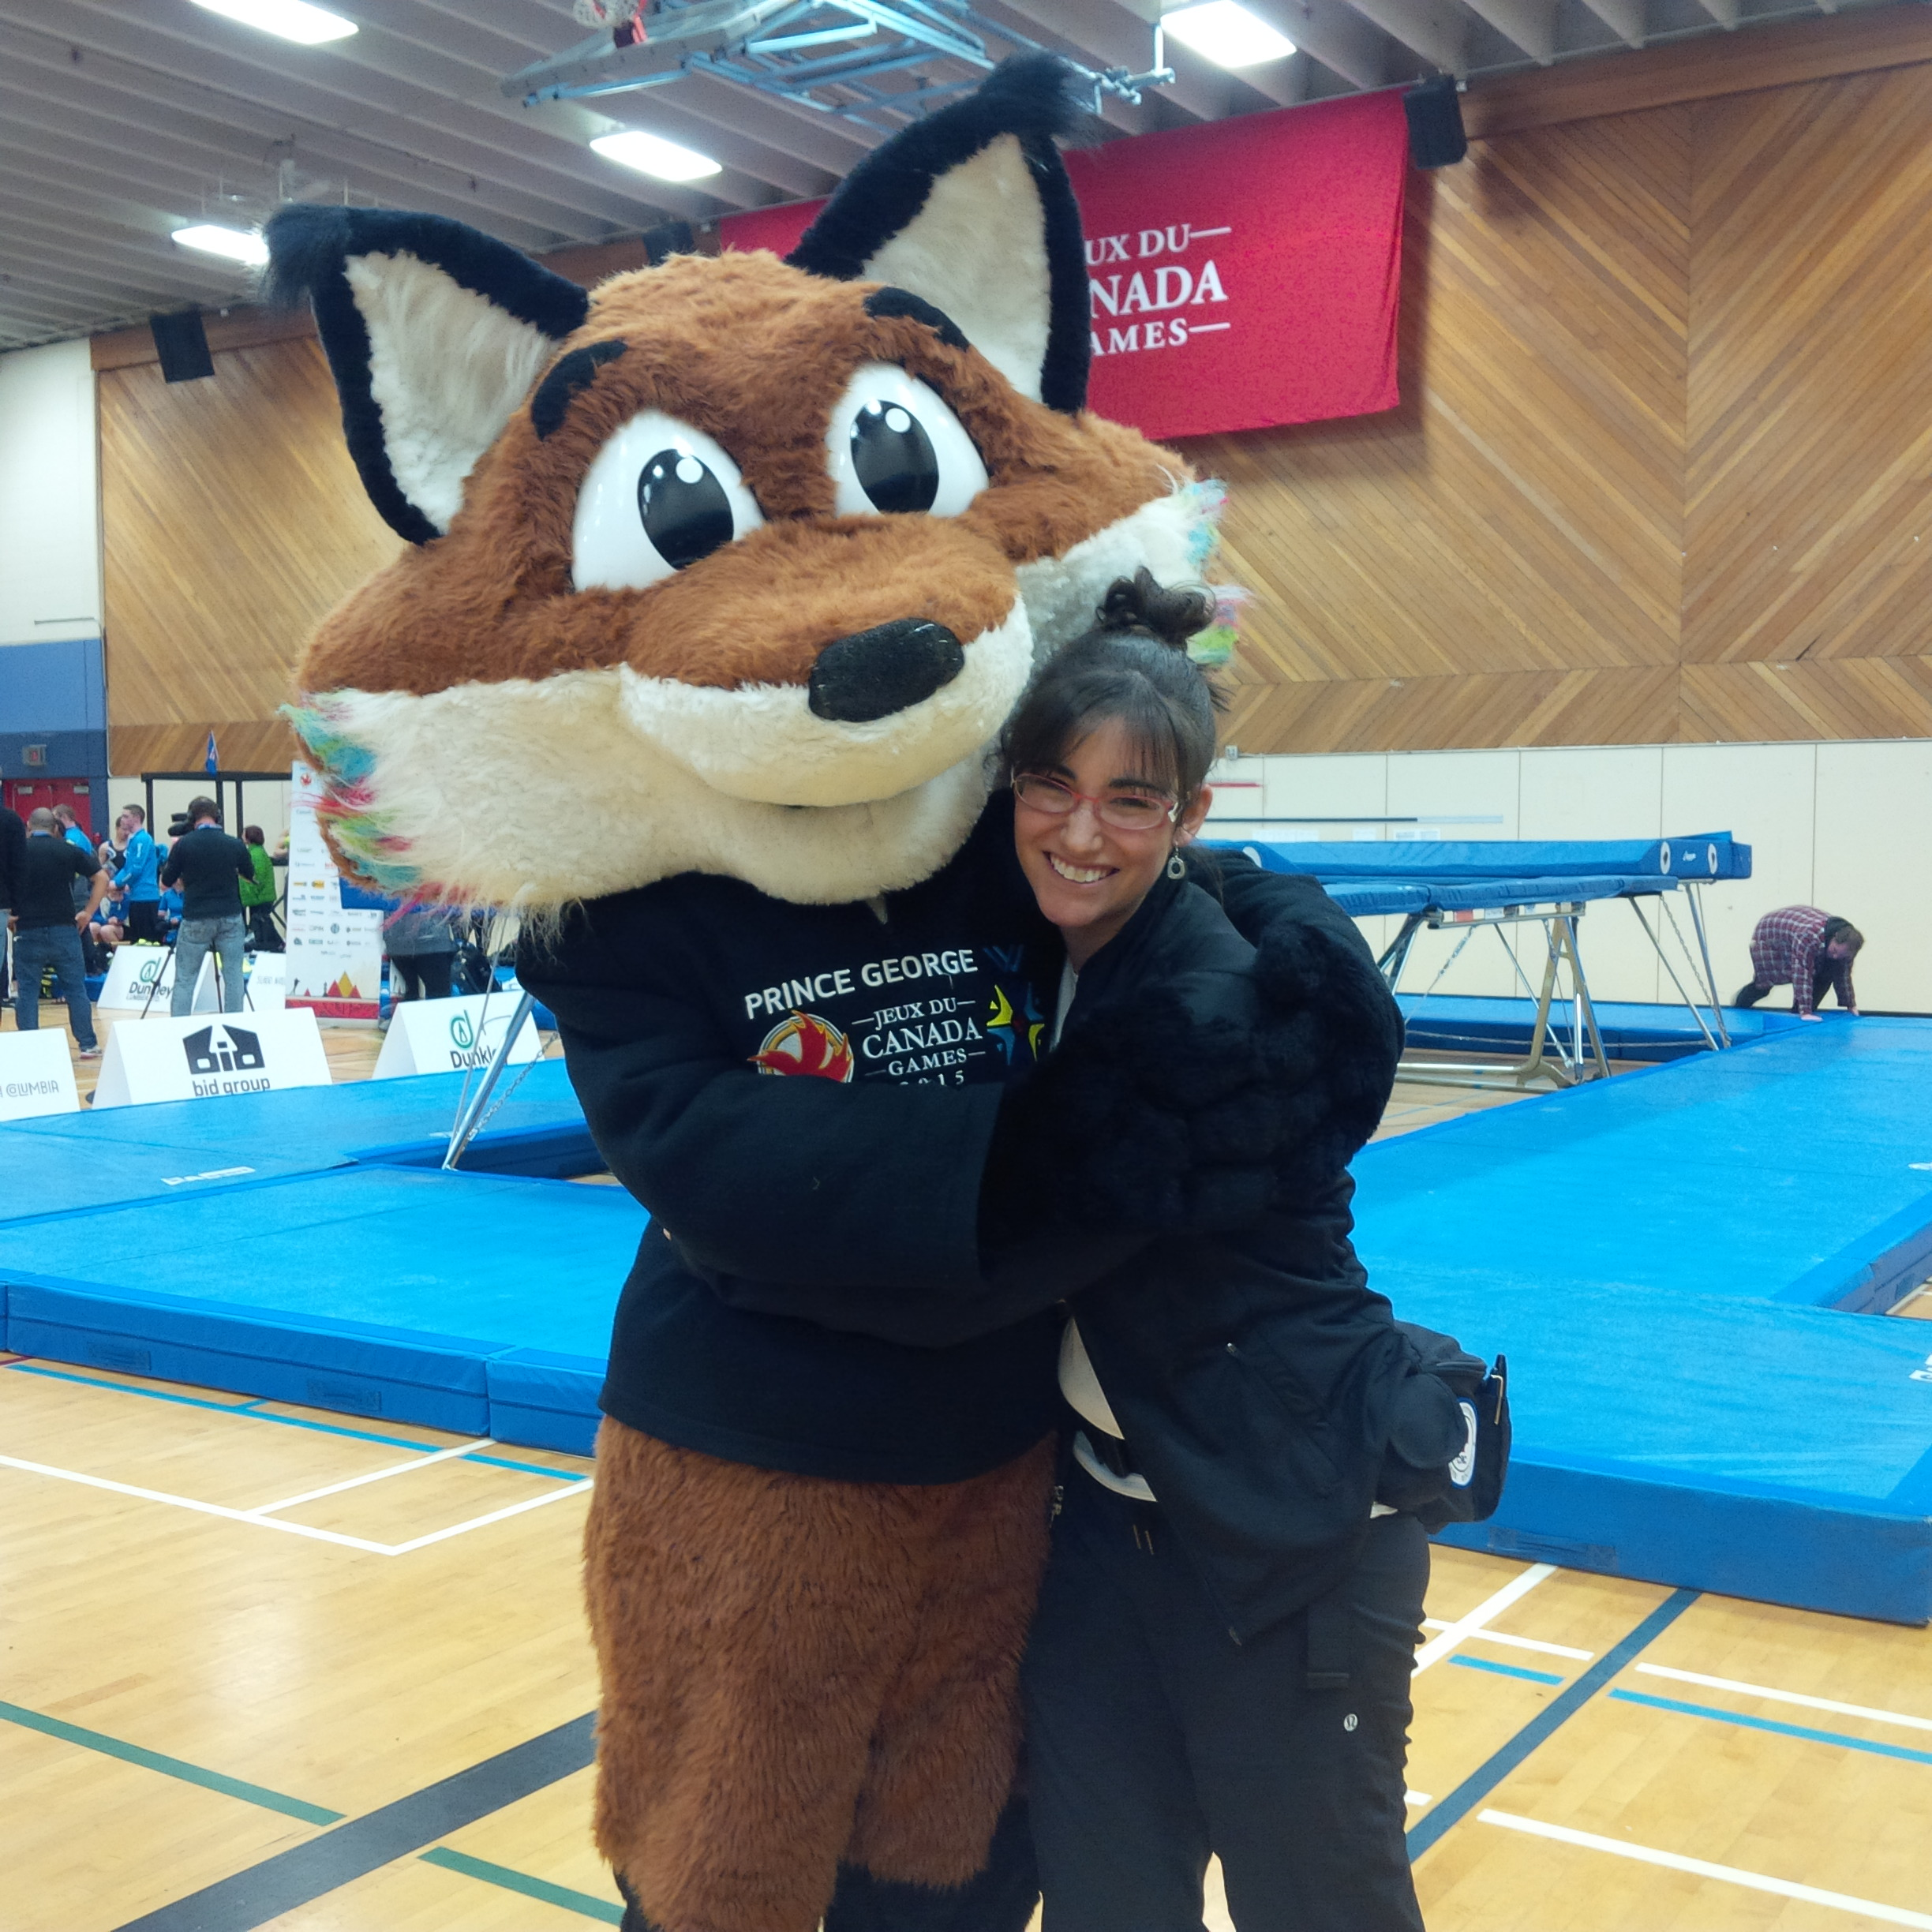 Nanguz and I at the trampoline competition during the 2015 Canada Winter Games.